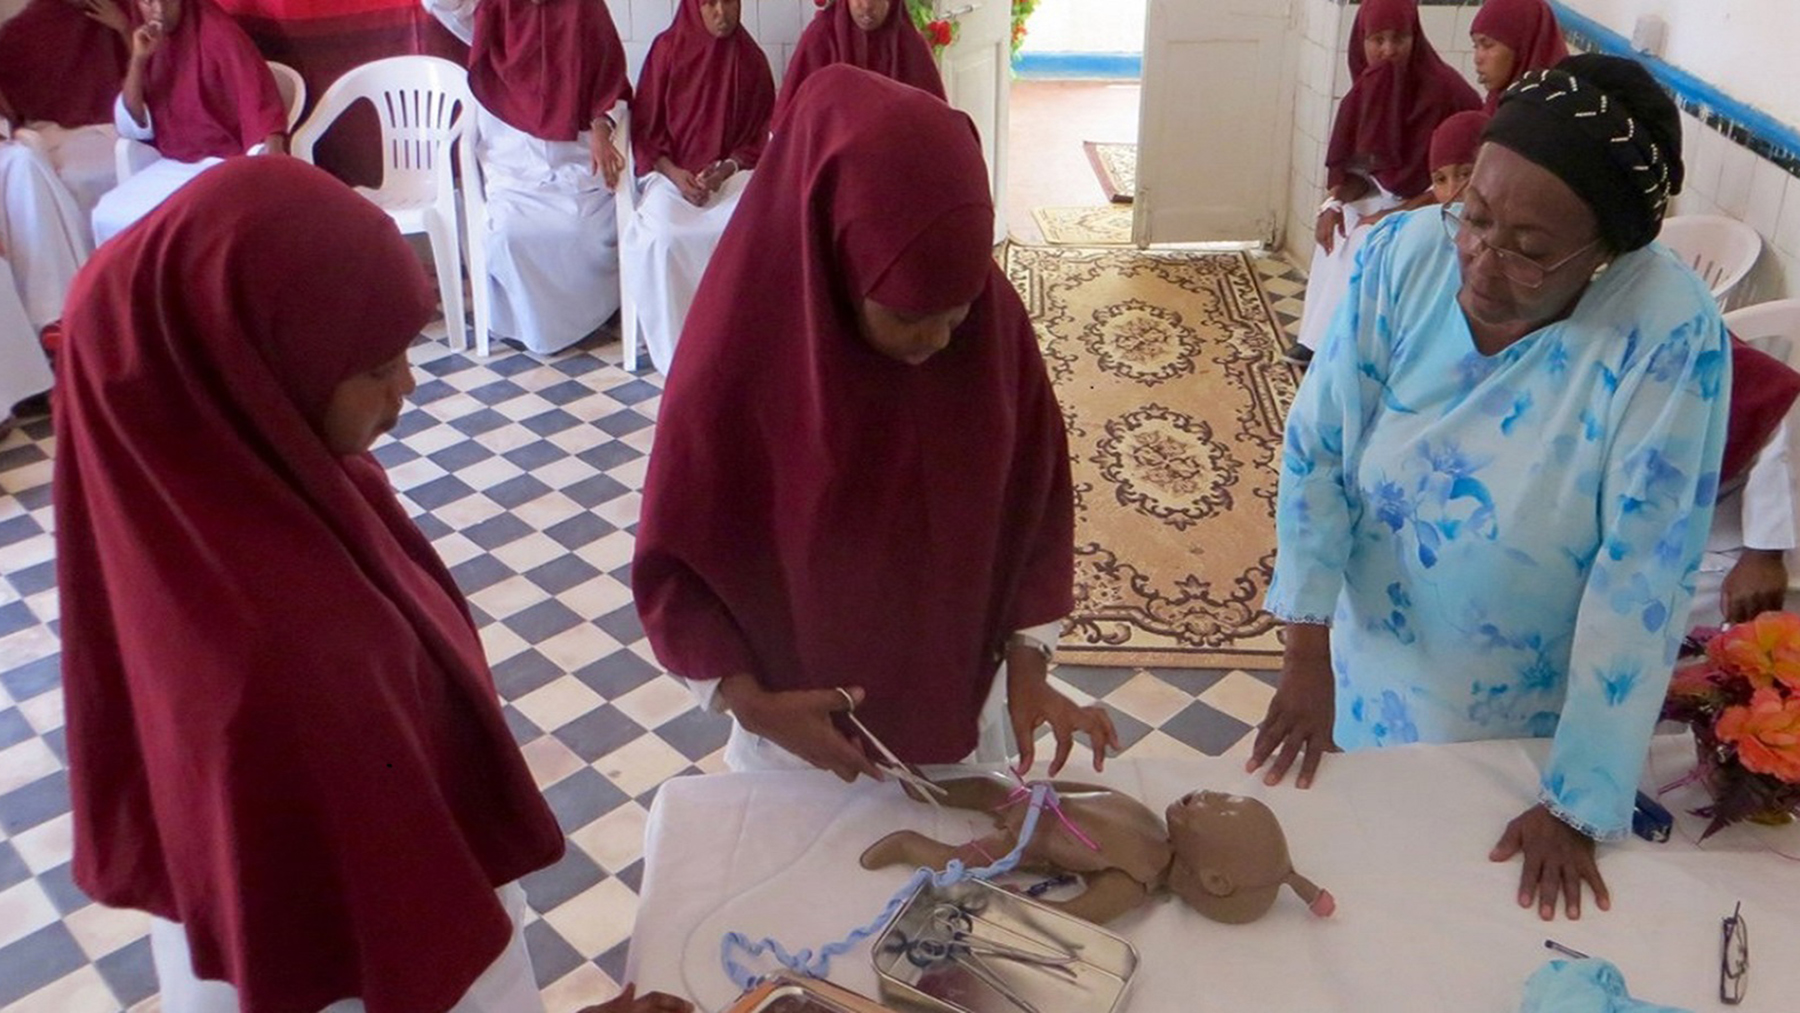 Edna Adan, founder of the Edna Adan University Hospital and a prominent women's health advocate, oversees a student midwife. (Photo courtesy of Edna Adan)